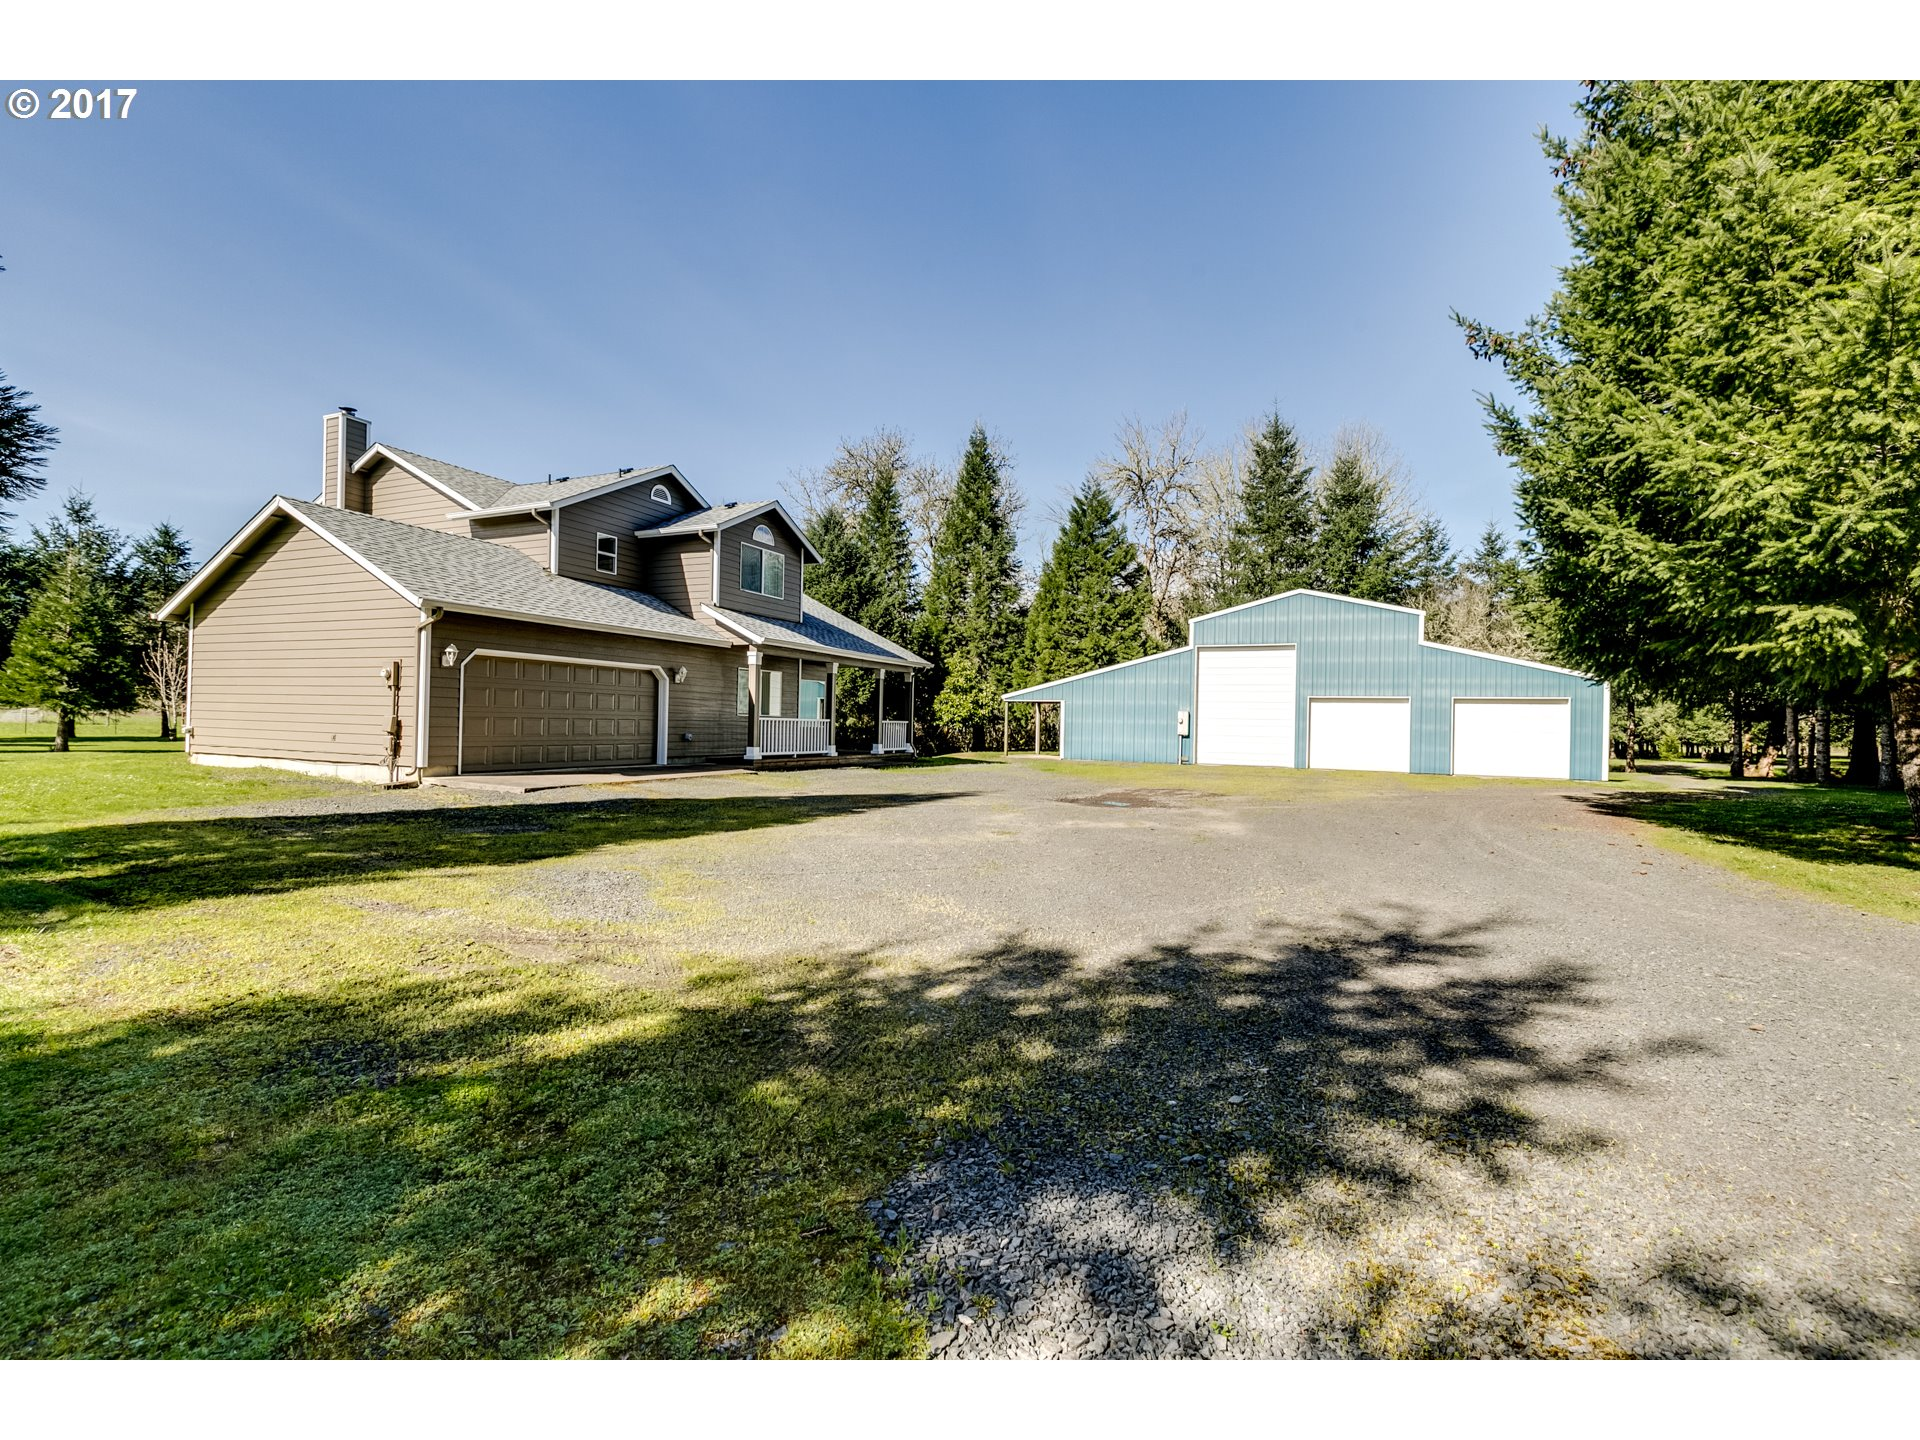 38040 QUEENS RD, Marcola, OR 97454